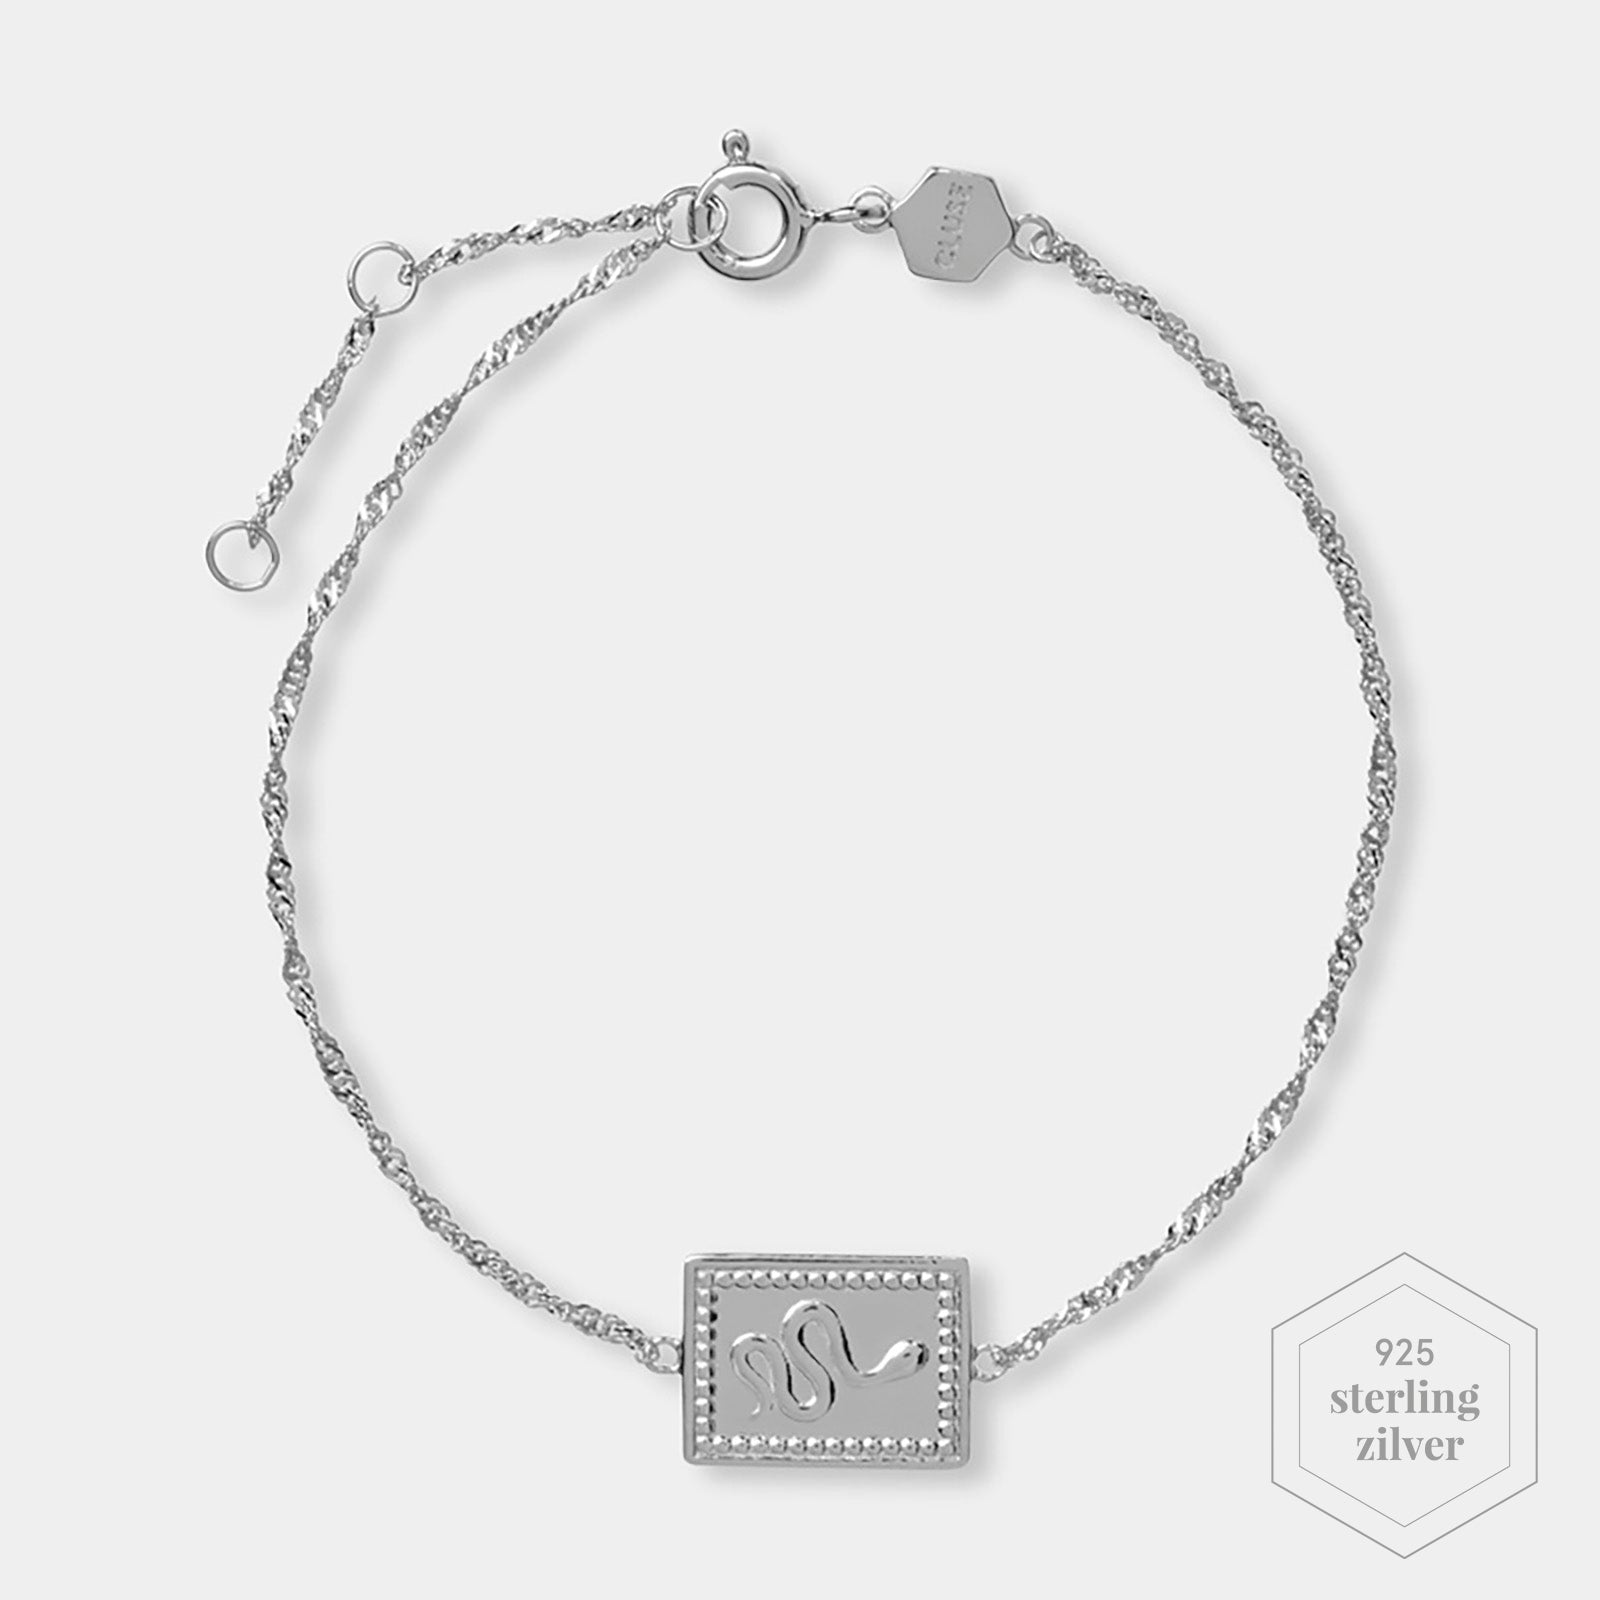 CLUSE Force Tropicale Silver Twisted Chain Tag Bracelet CLJ12022 - Armbandje